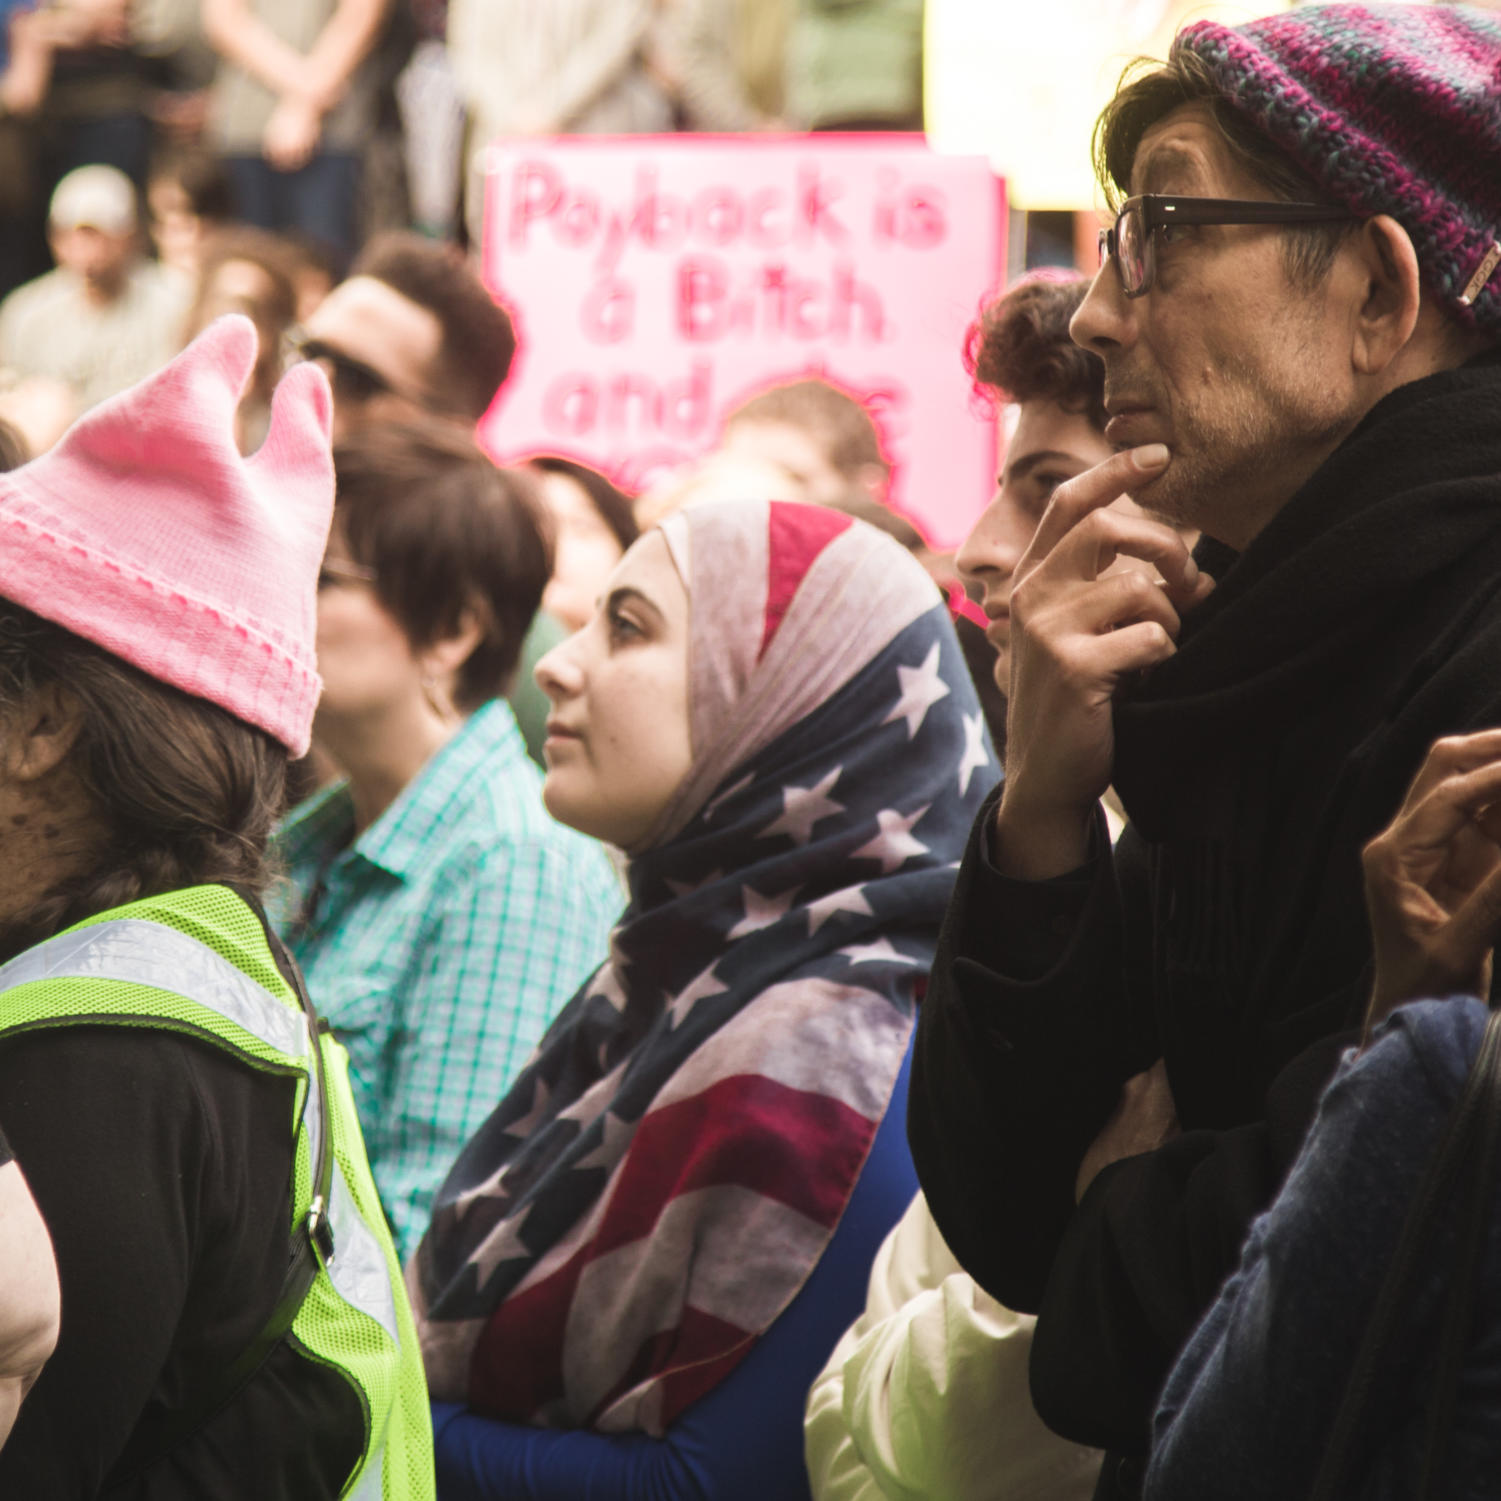 A Muslim woman wearing an American flag hijab as she listens to the keynote speeches. Trump's immigration travel ban was a major issue addressed by the Women's March Photo credit: Matthew Dietrich